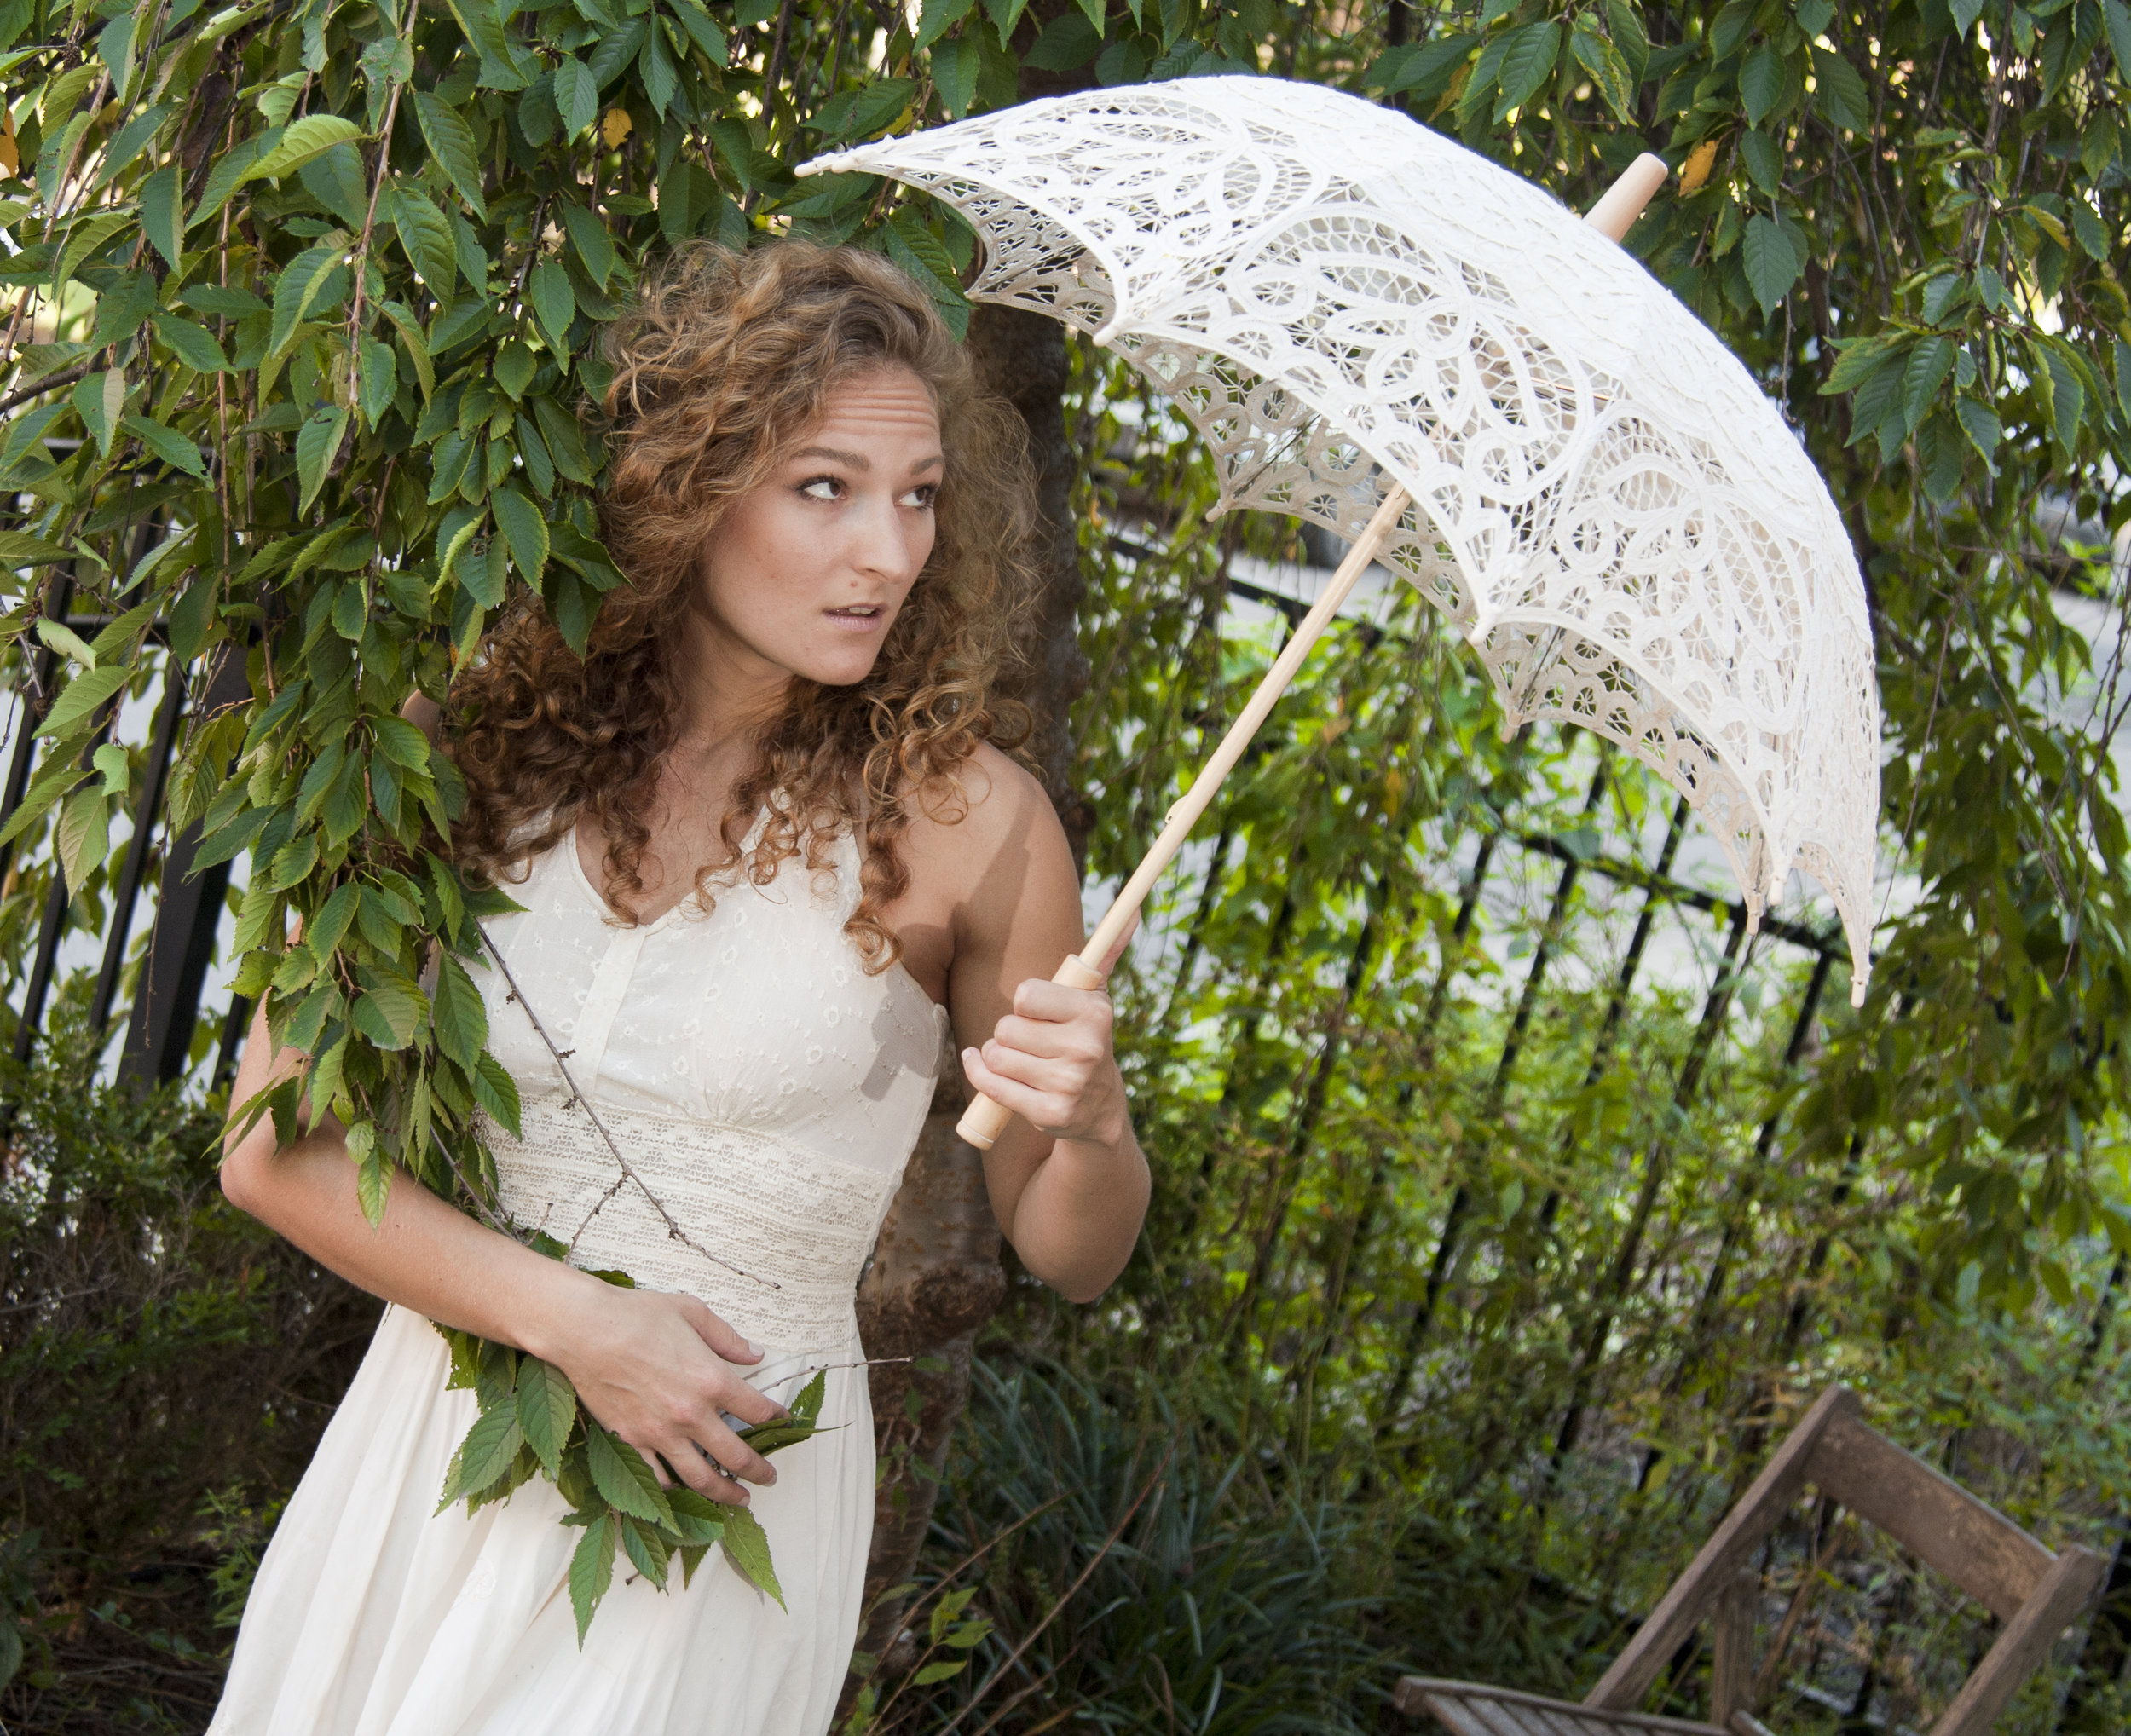 Kelly Klein umbrella.JPG